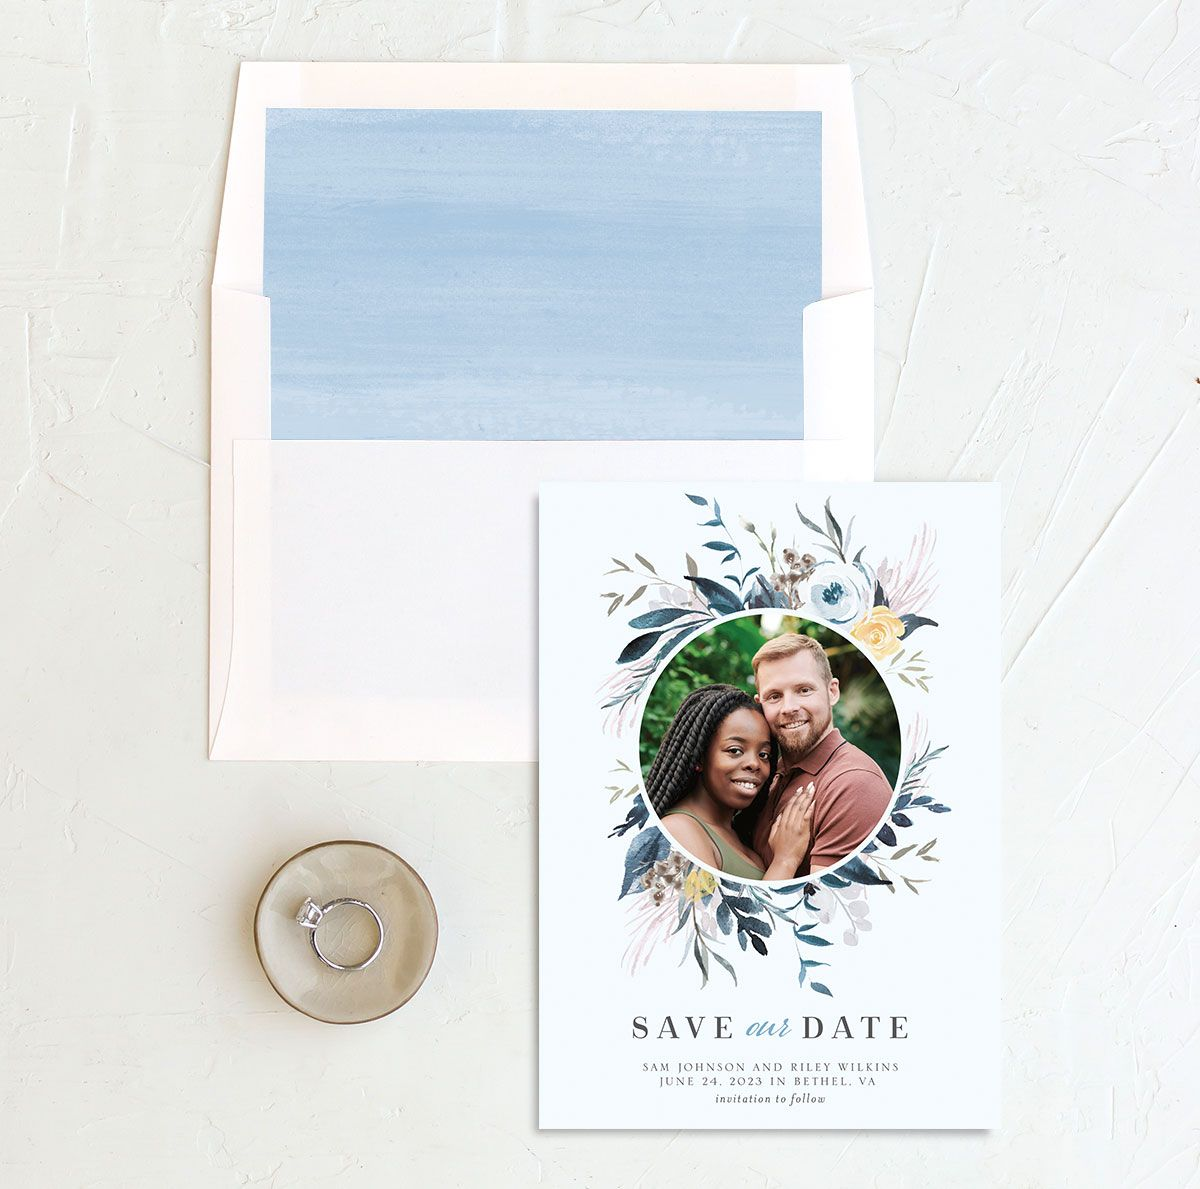 Wild Wreath Save the Date Card front and back blue